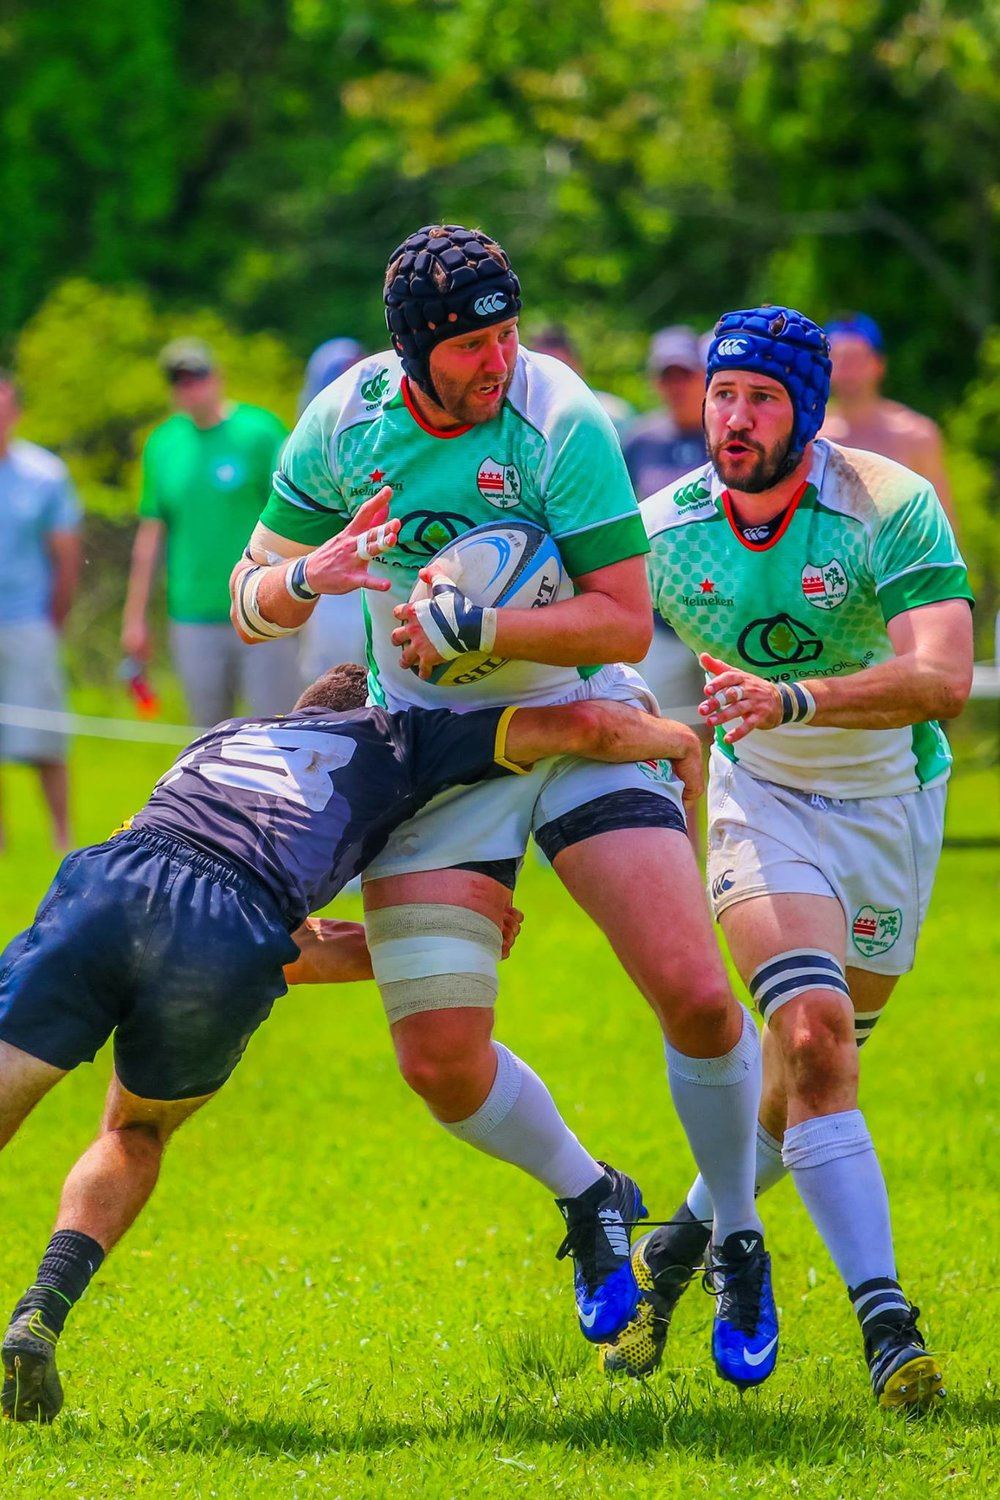 Lock Larry Comiskey looks for an offload to Irish veteran and recent retiree Andrew Exum against Old Gaelic in the MAC Semi-Finals. Photo credit: Michael Smith (https://www.facebook.com/GjeterhundPhotography/)